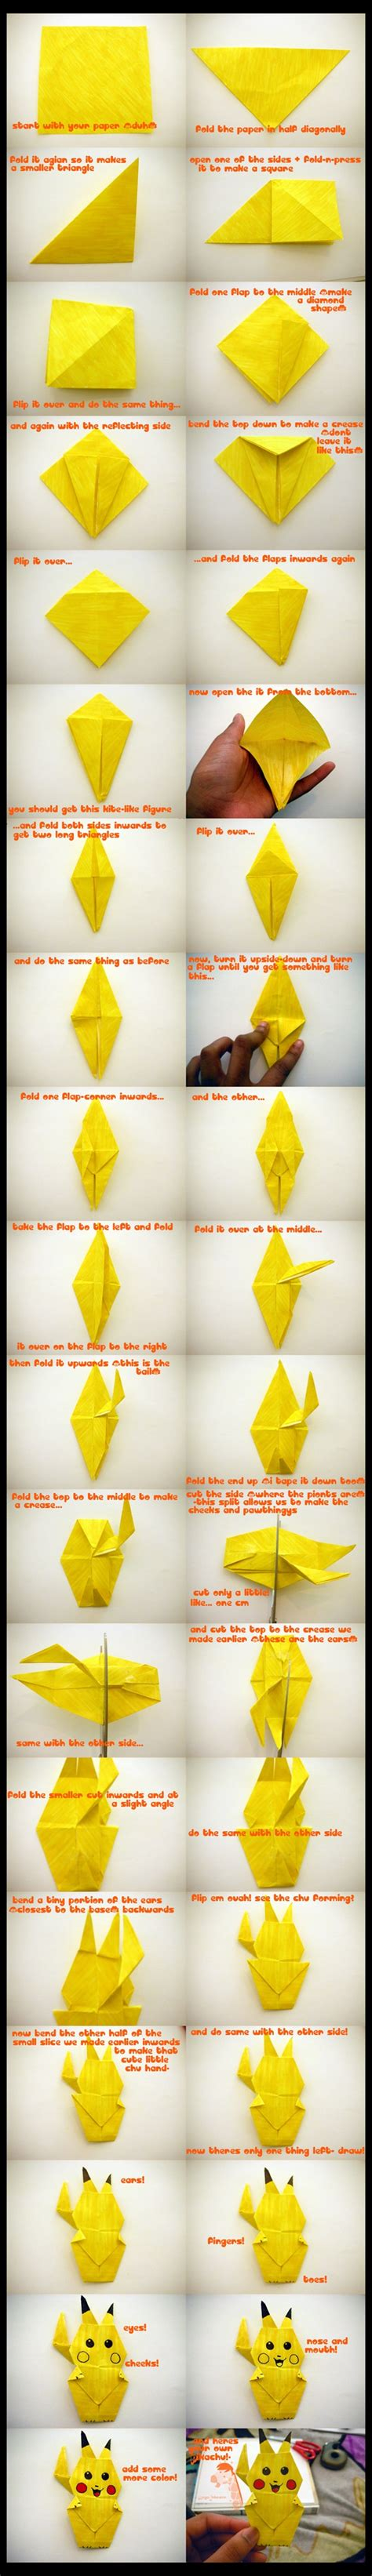 How To Make A 3d Origami Pikachu - how to make an origami pikachu bit rebels